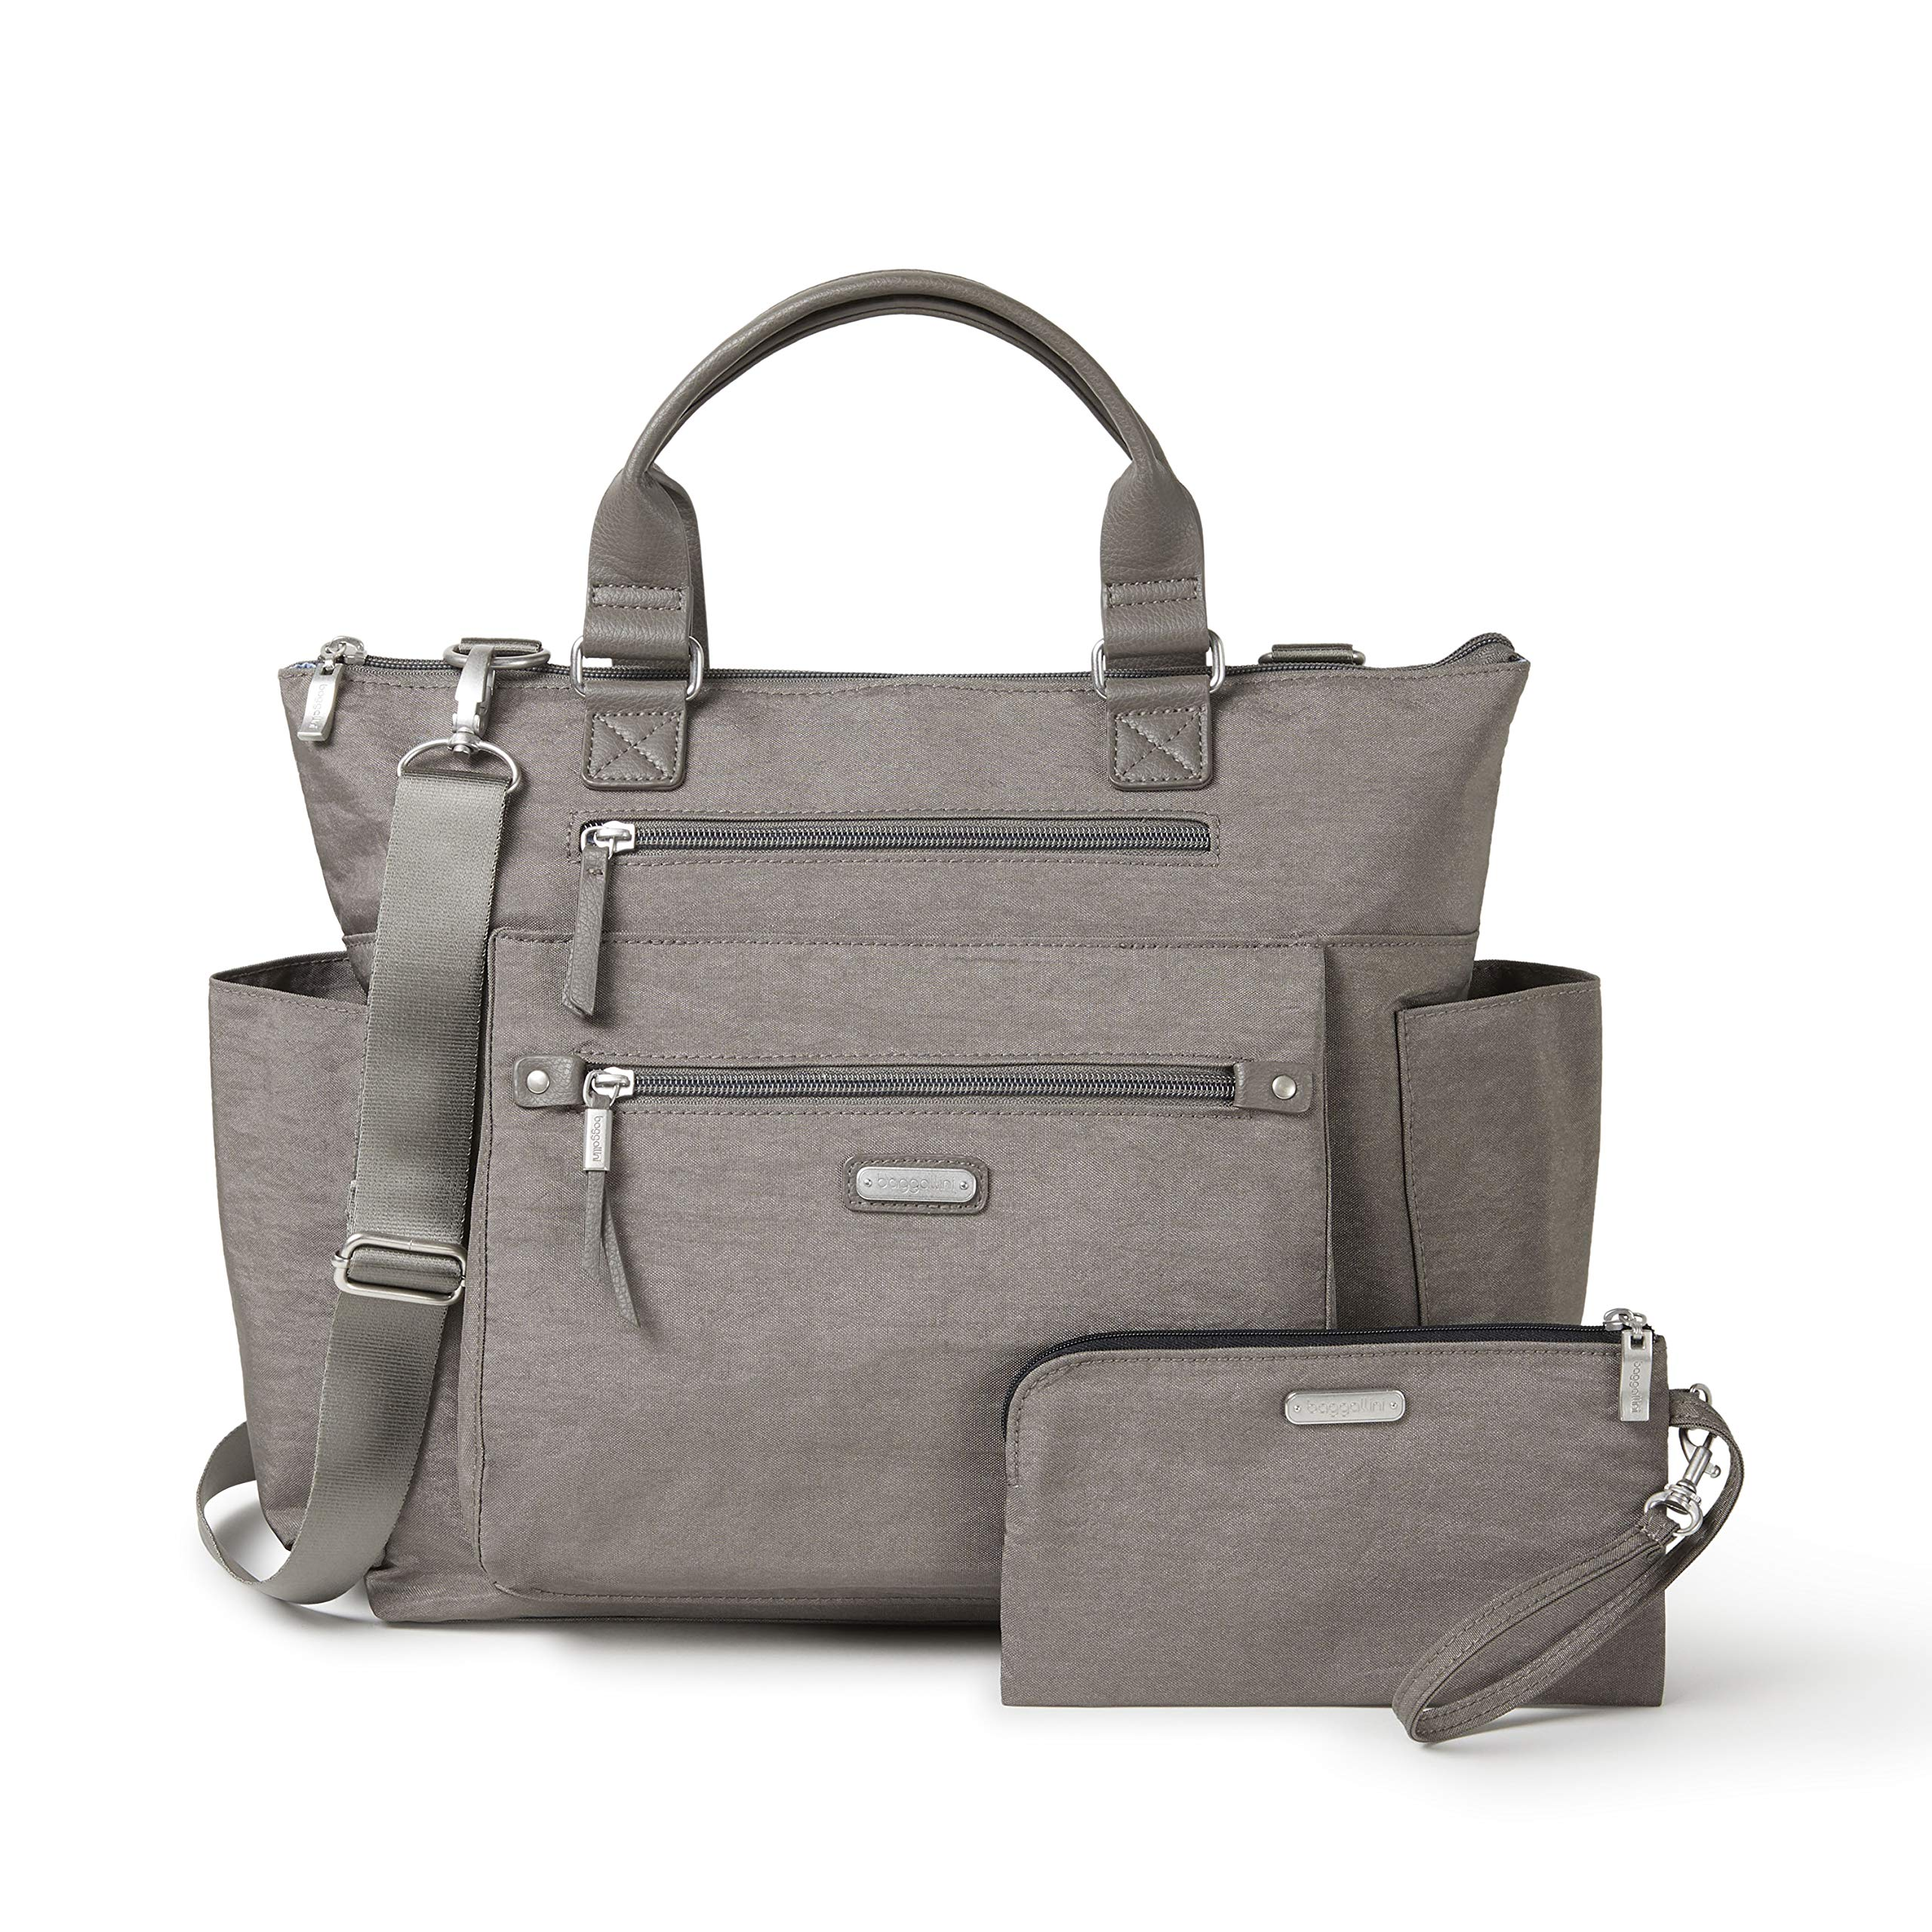 Baggallini 3-in-1 convertible backpack with RFID phone wristlet (Sterling Shimmer)